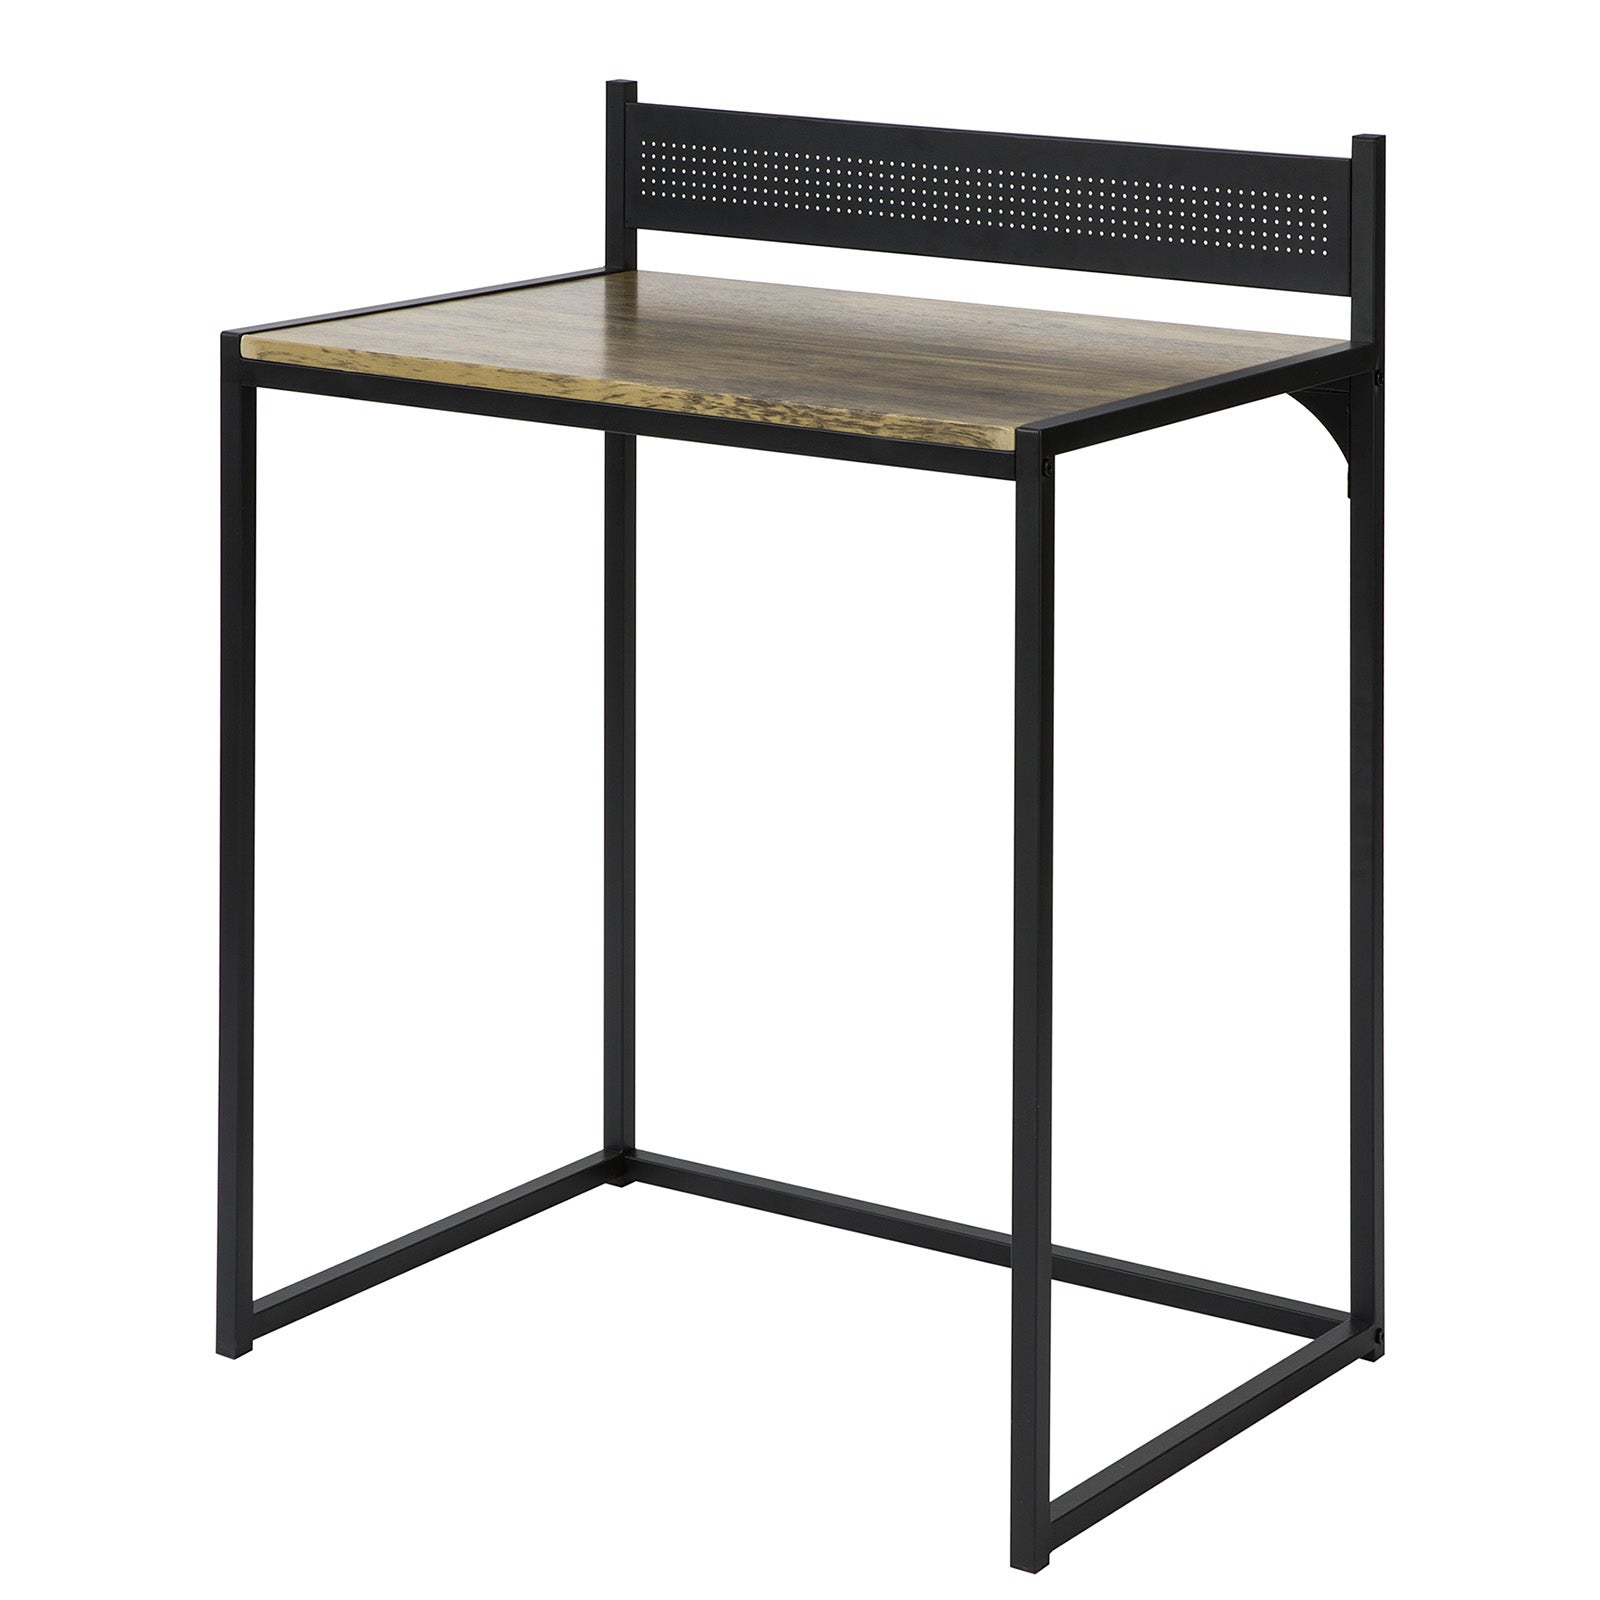 SoBuy desk for home and office wooden table desk black FWT66-SCH, IT